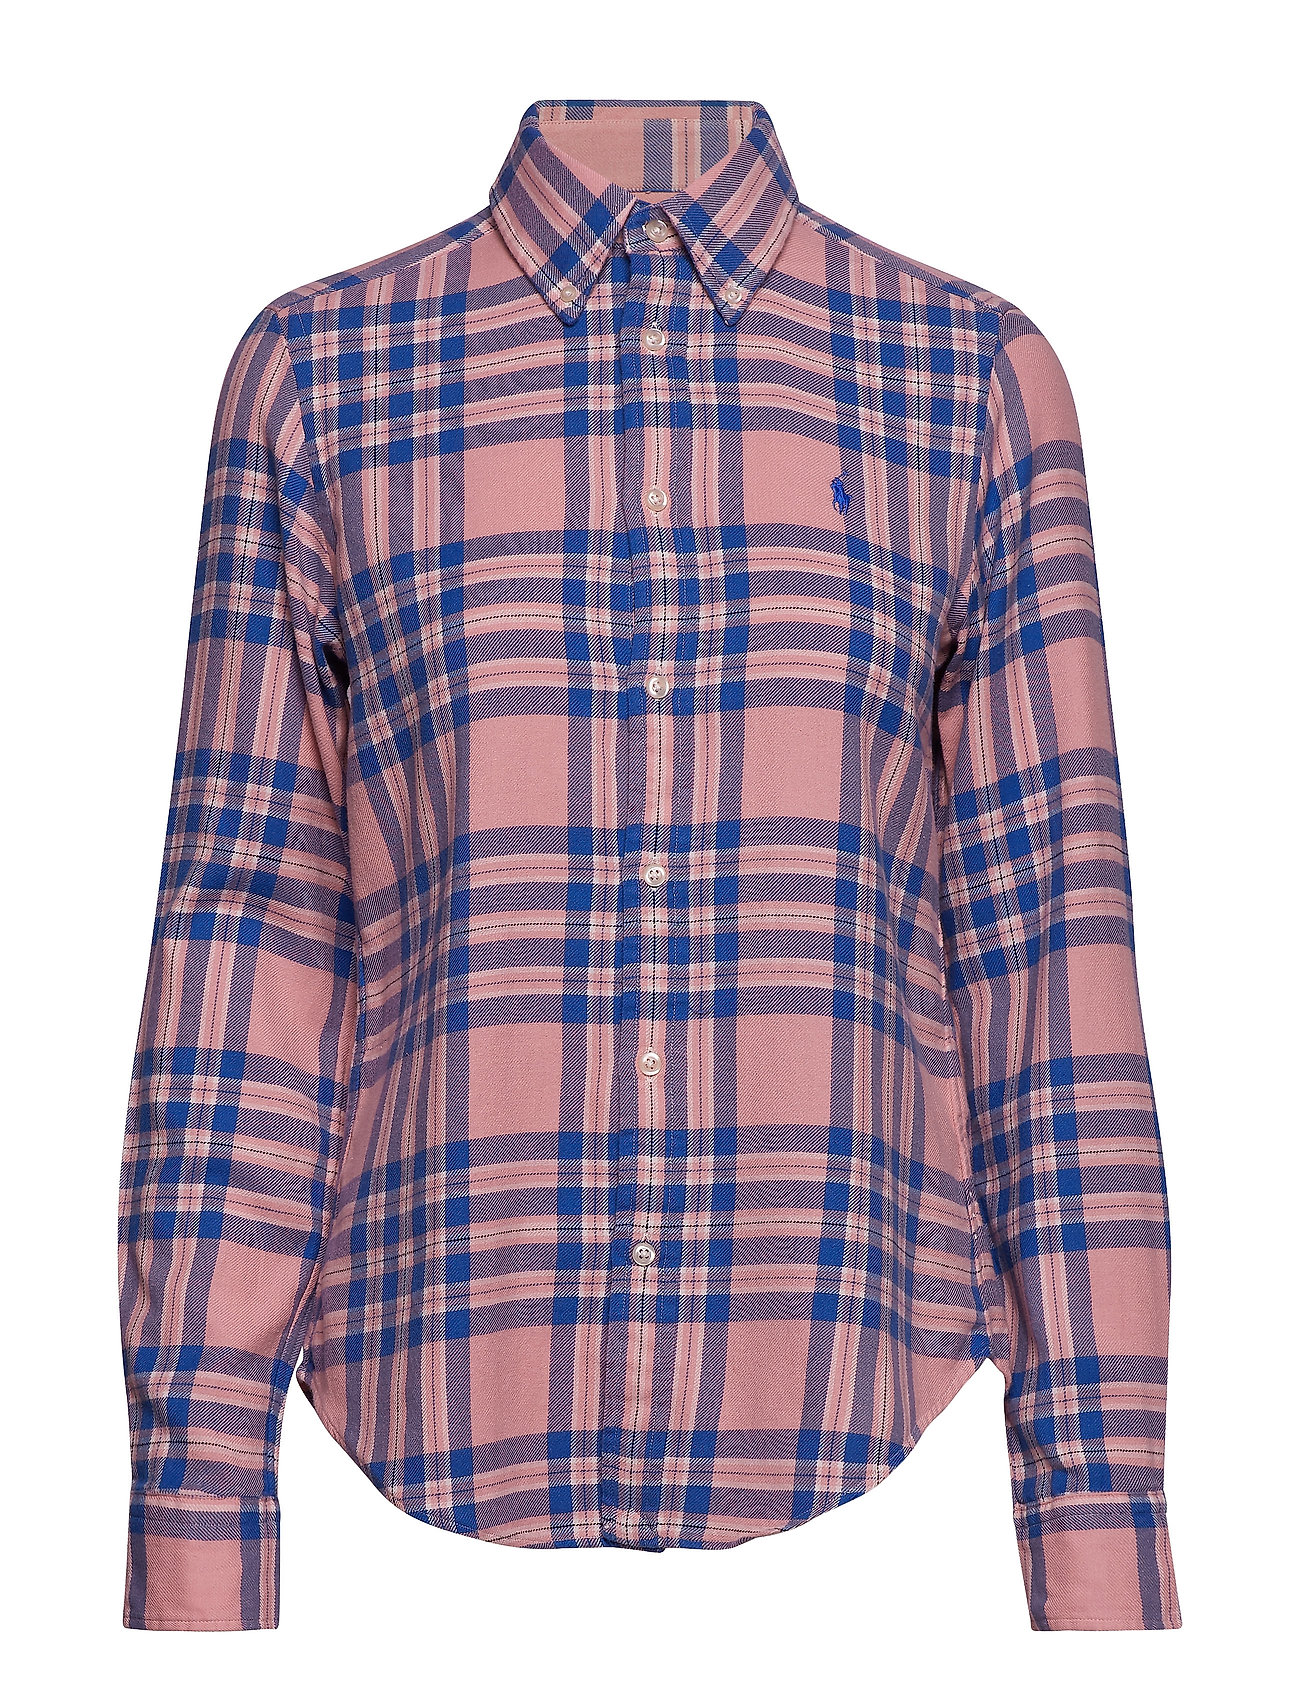 Polo Ralph Lauren Classic Fit Plaid Twill Shirt - 216A PINK/BLUE